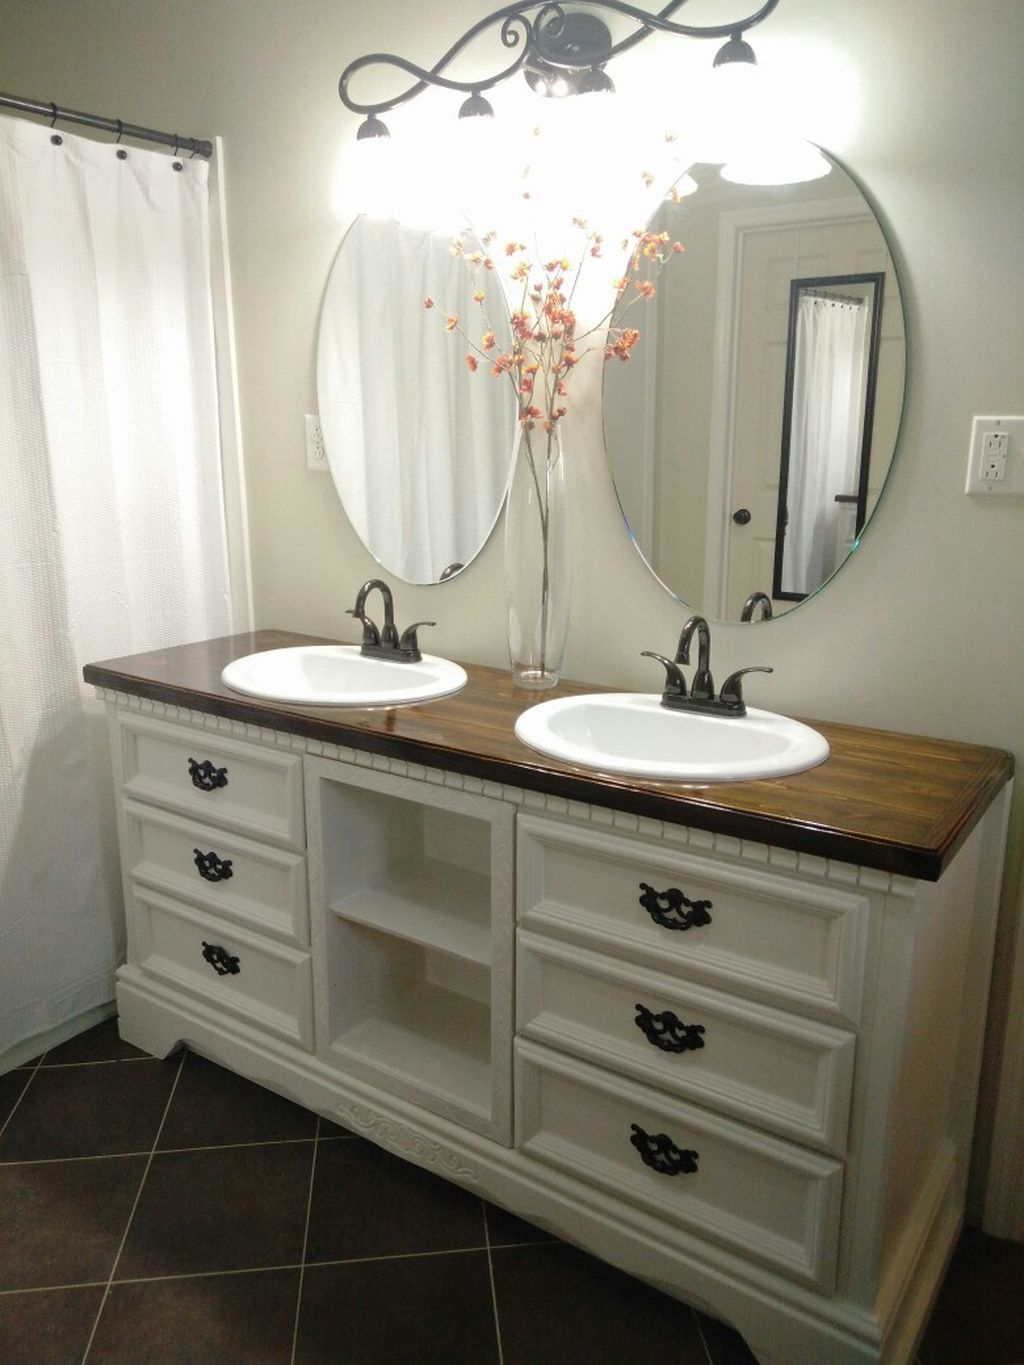 Inspiring Rustic Bathroom Vanity Remodel Ideas 63